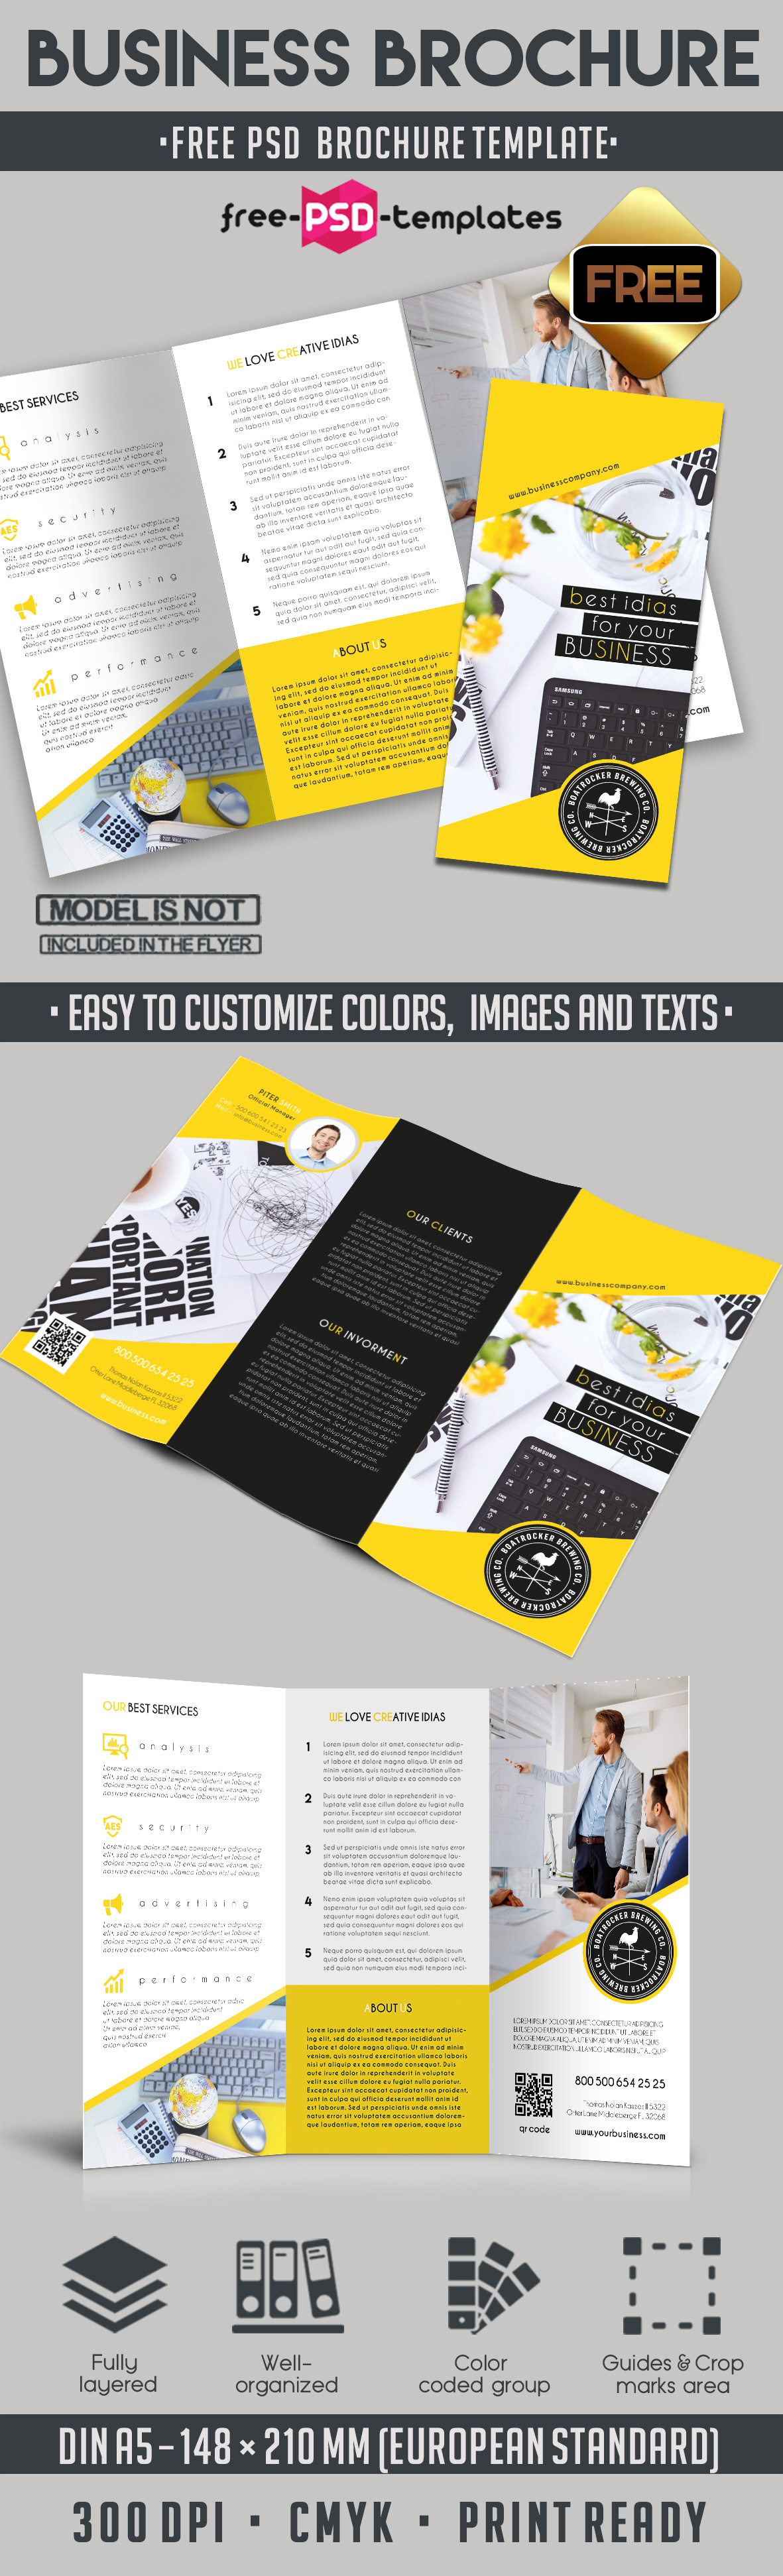 Free business tri fold brochure psd template free psd for Tri fold brochure psd template